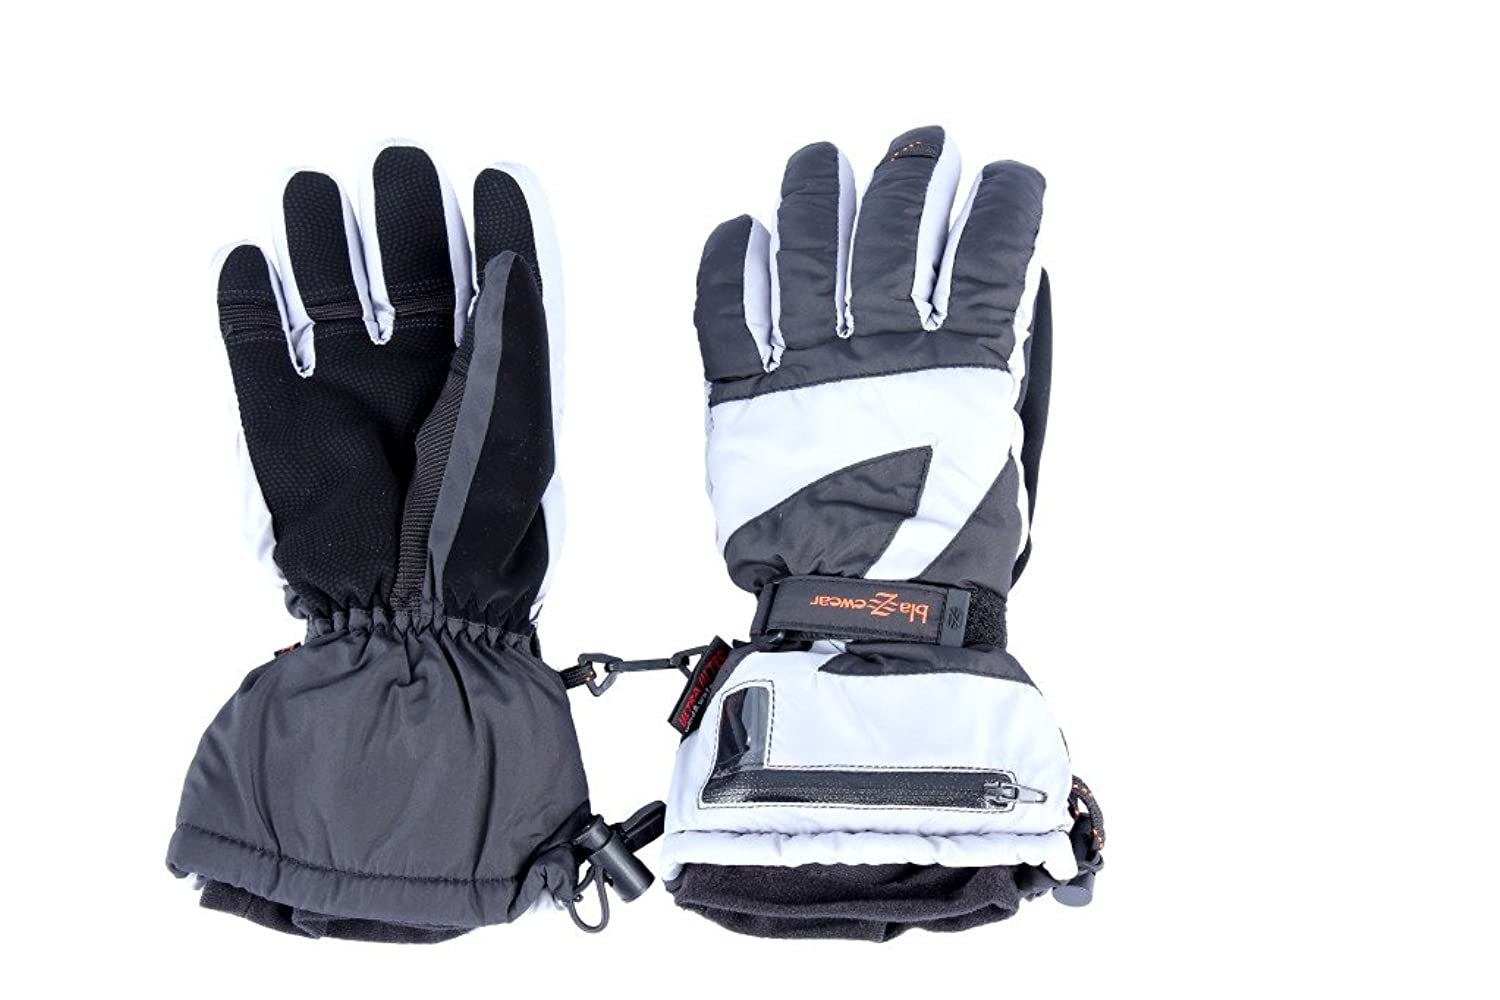 heated-activa-sports-glove-unisex